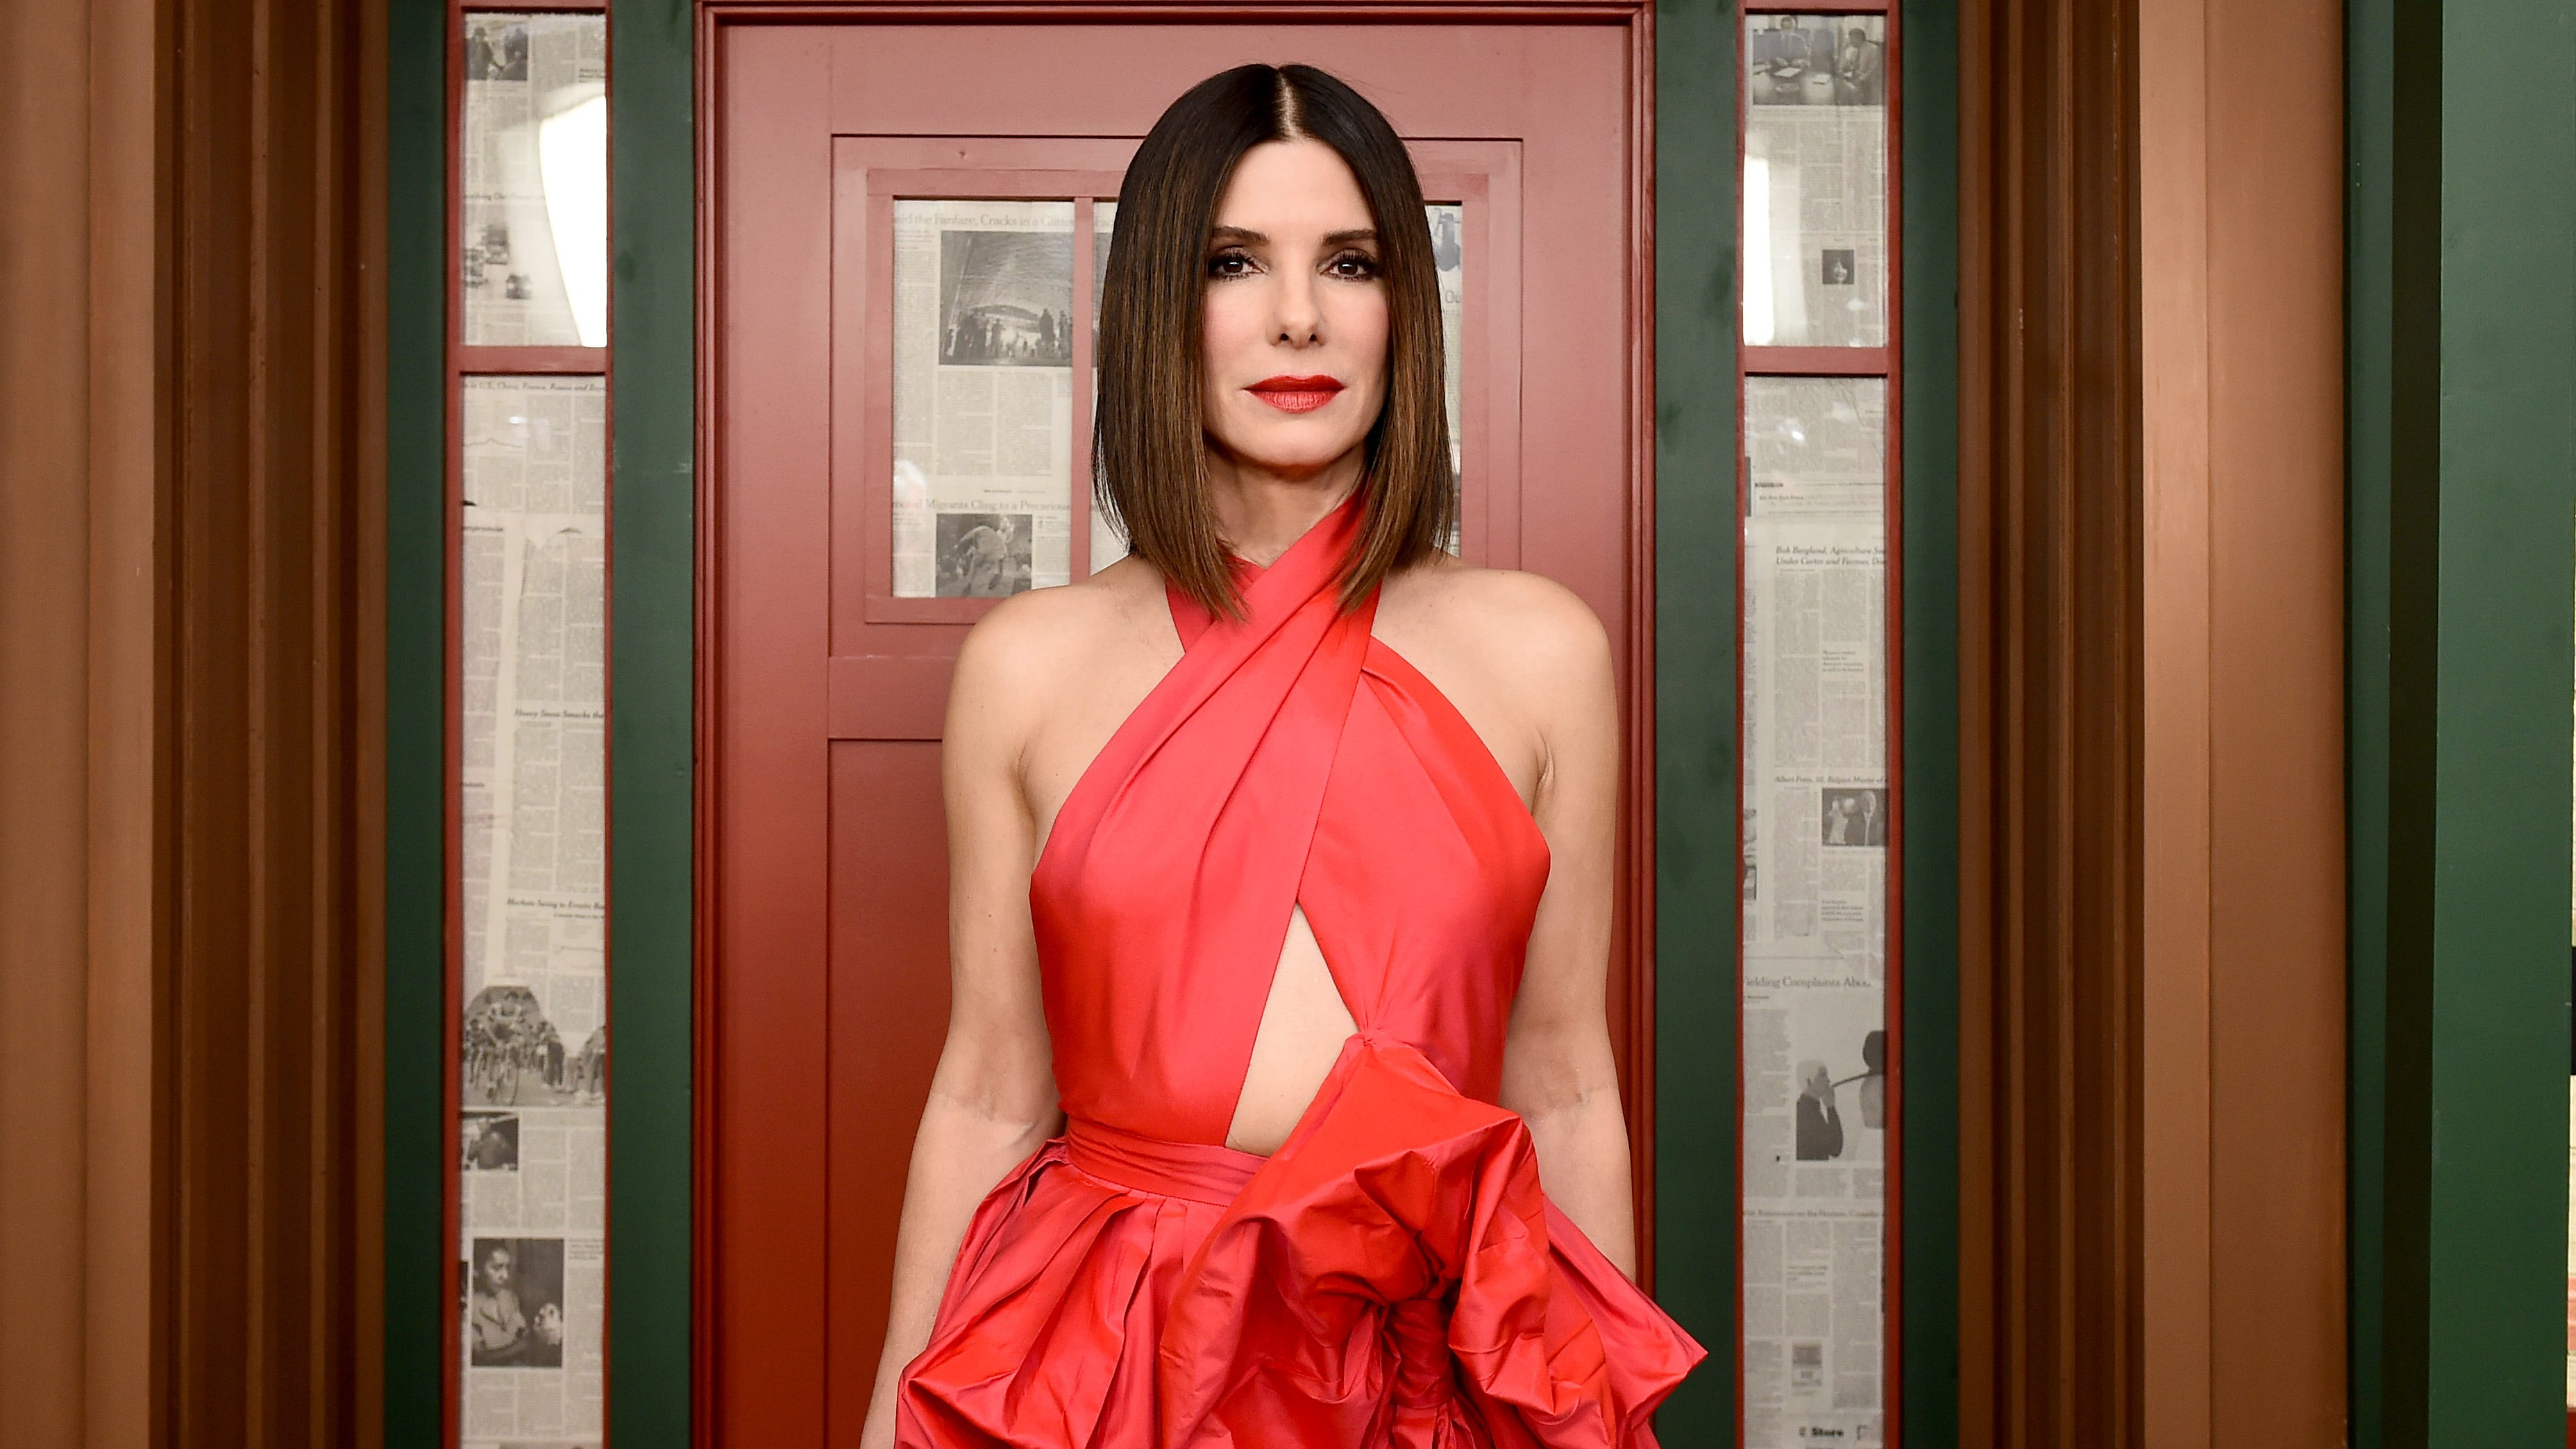 'It's easy to go there as a mom': Sandra Bullock on her role as a fearful mom in 'Bird Box'